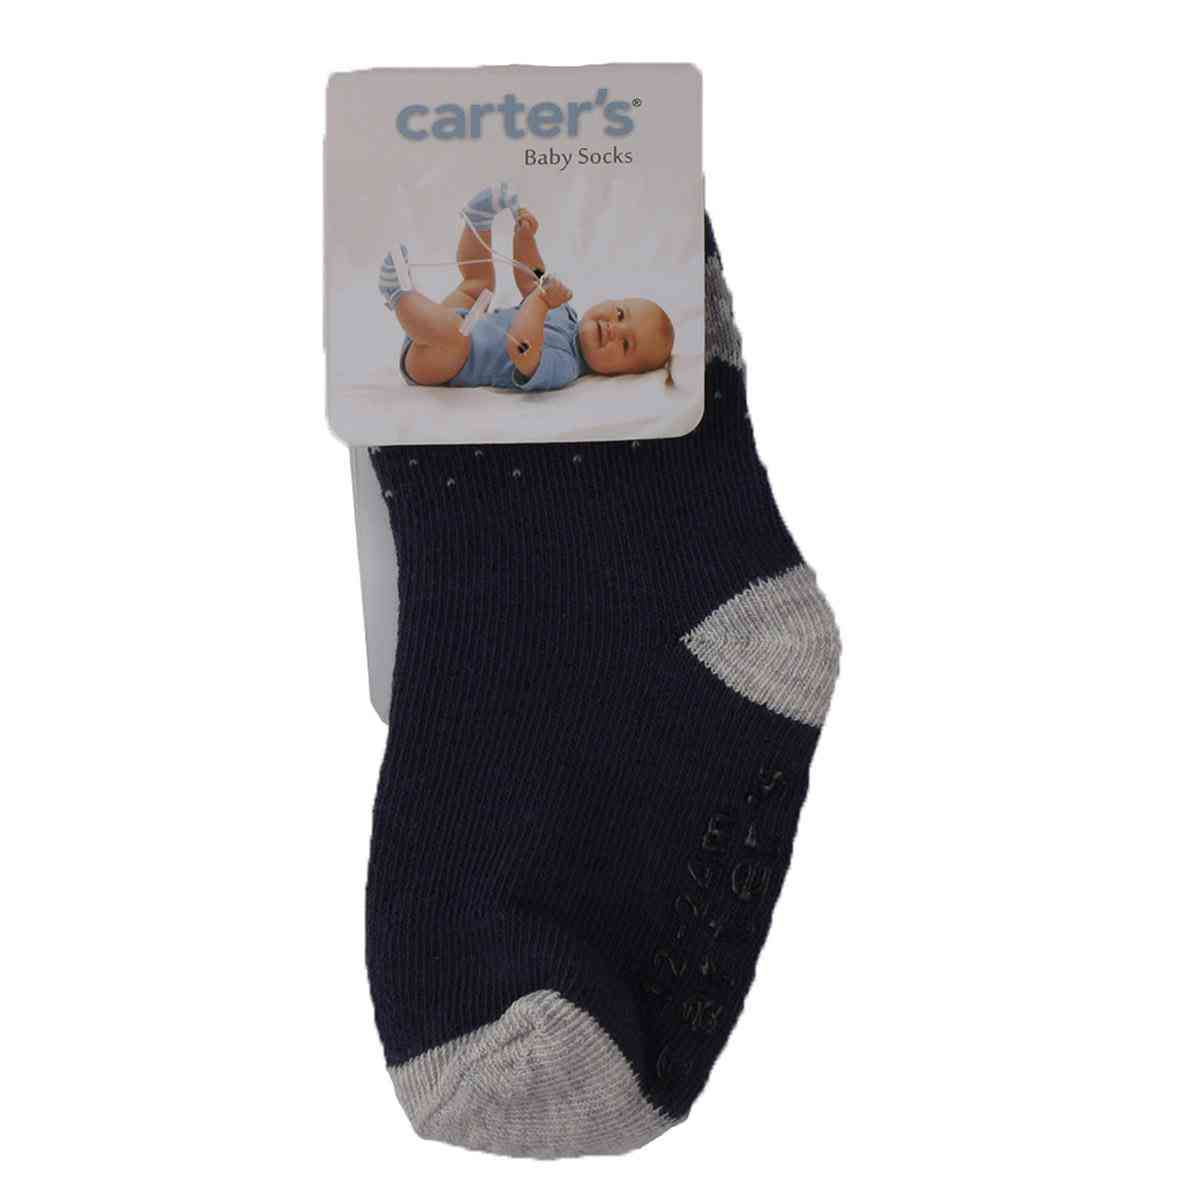 Carter's Soft Baby Socks for 0-12 Month Baby  Blue